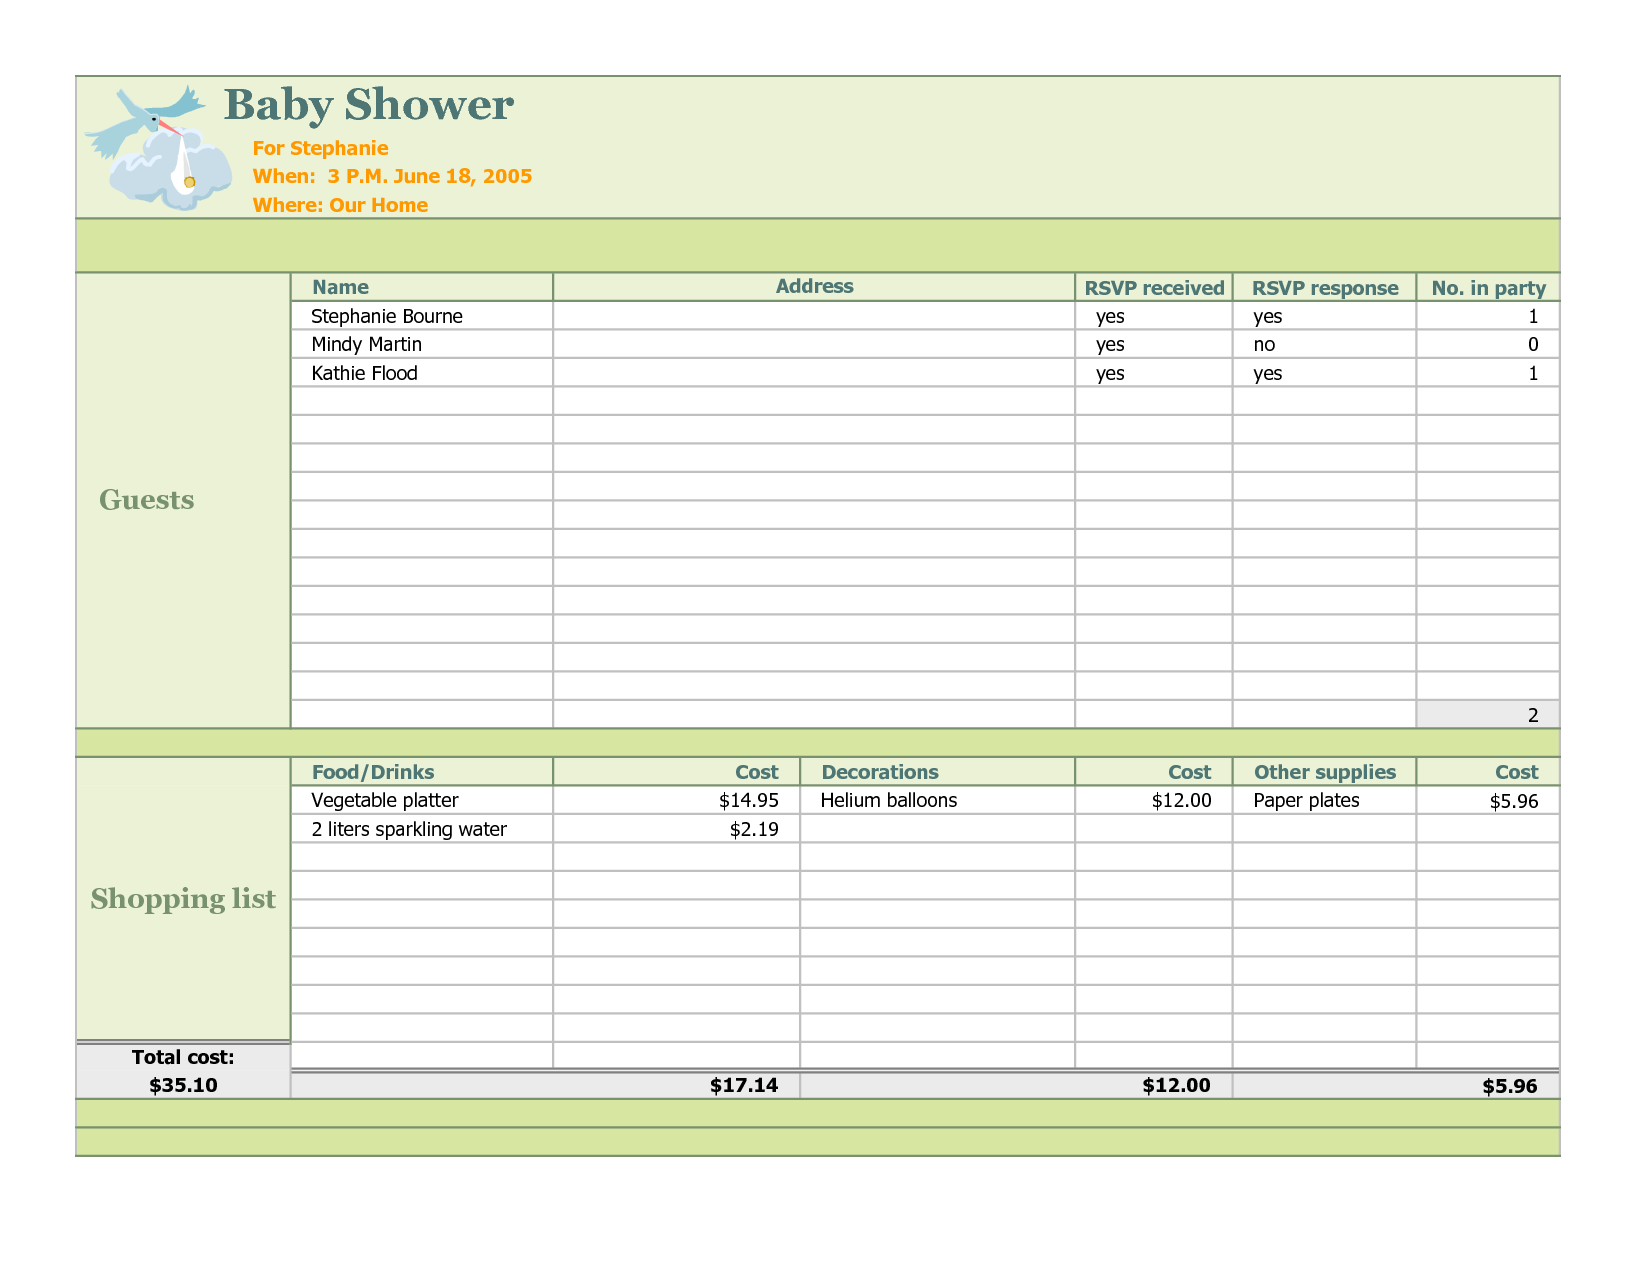 Baby Shower Planning Checklist | Baby Shower Planner Excel ...